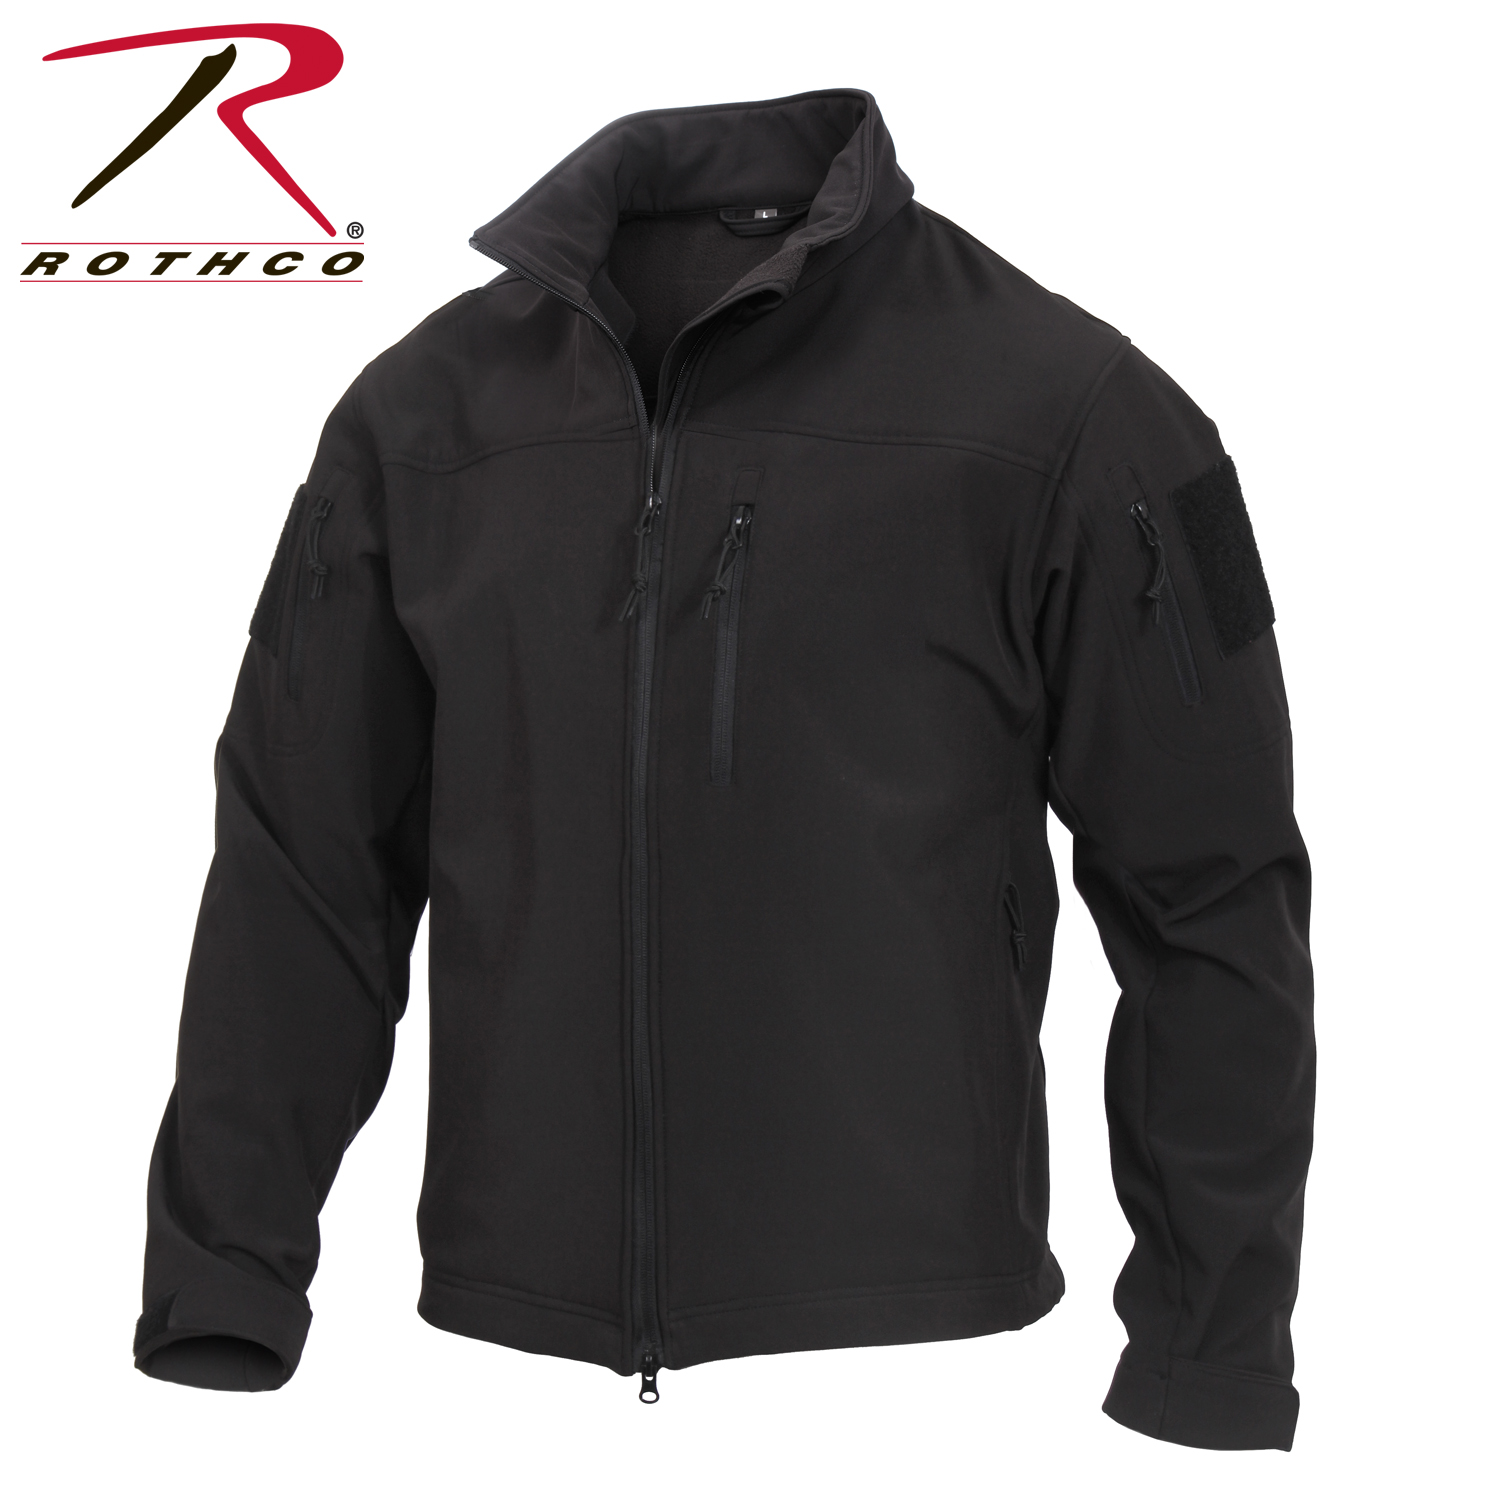 Rothco Stealth Ops Soft Shell Tactical Jacket